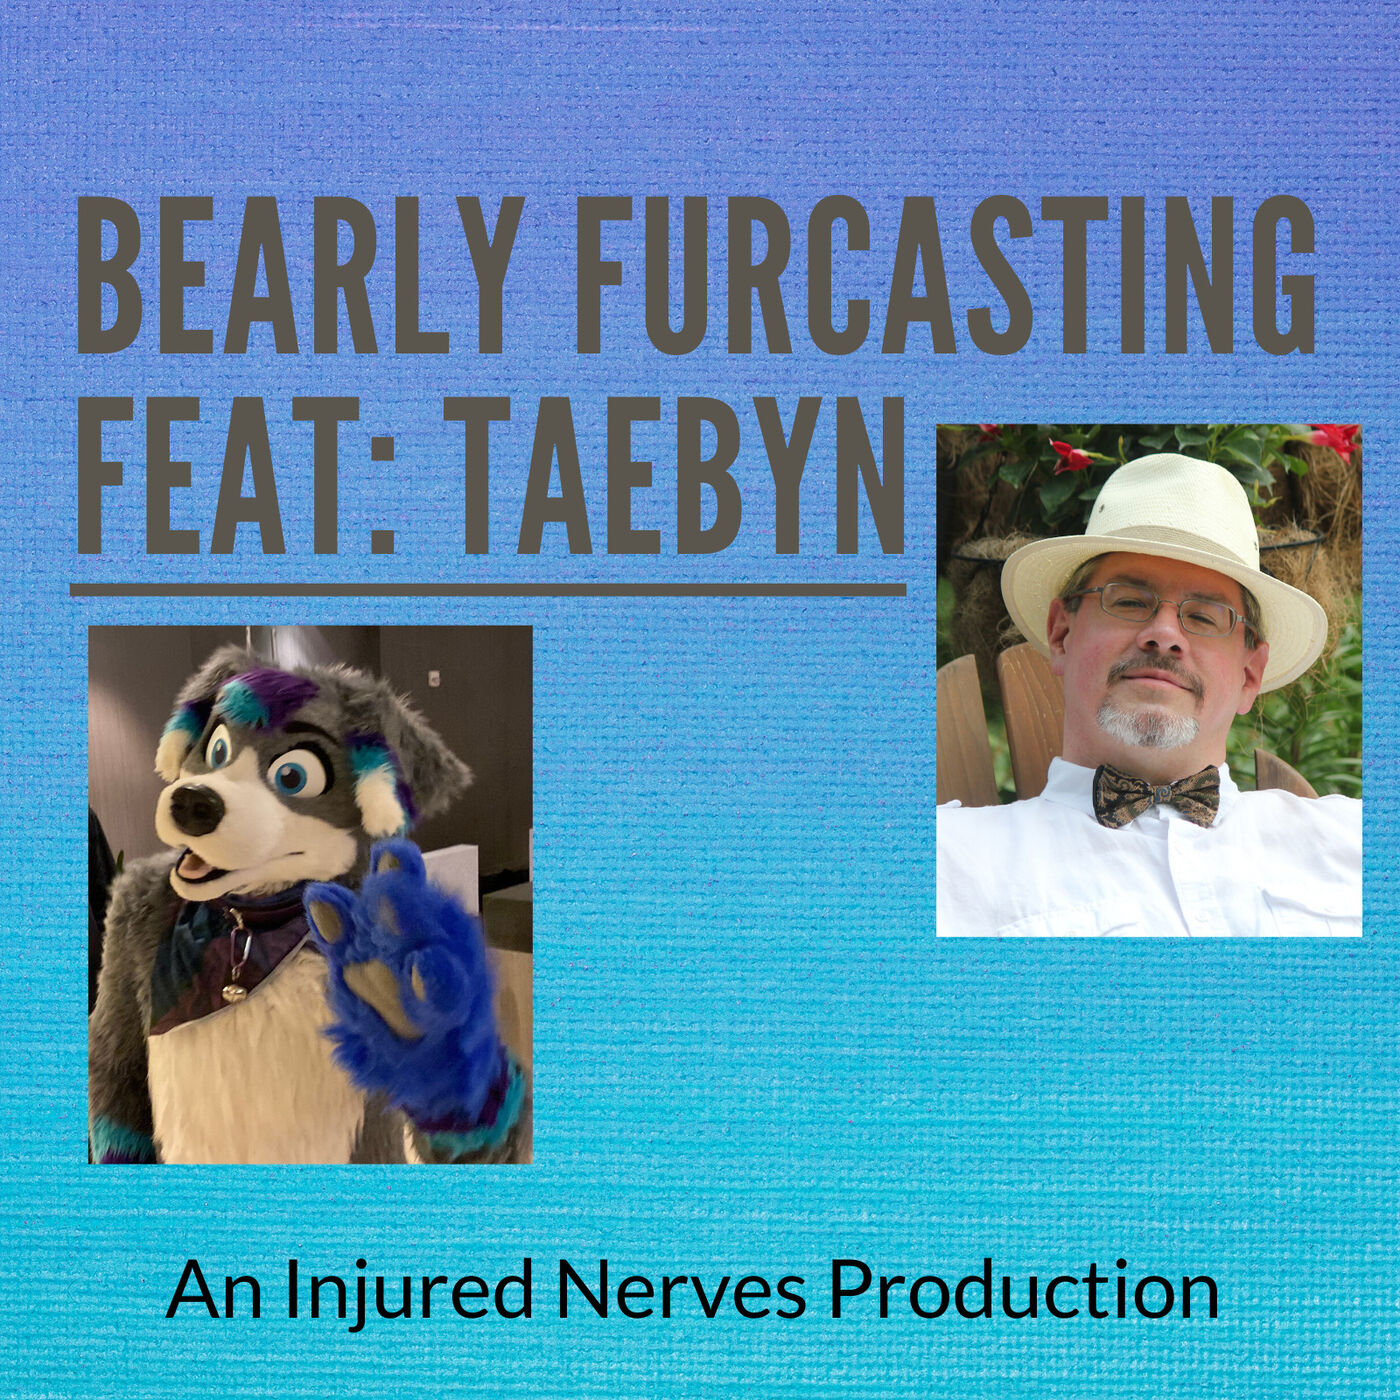 Bearly Furcasting feat. Taebyn